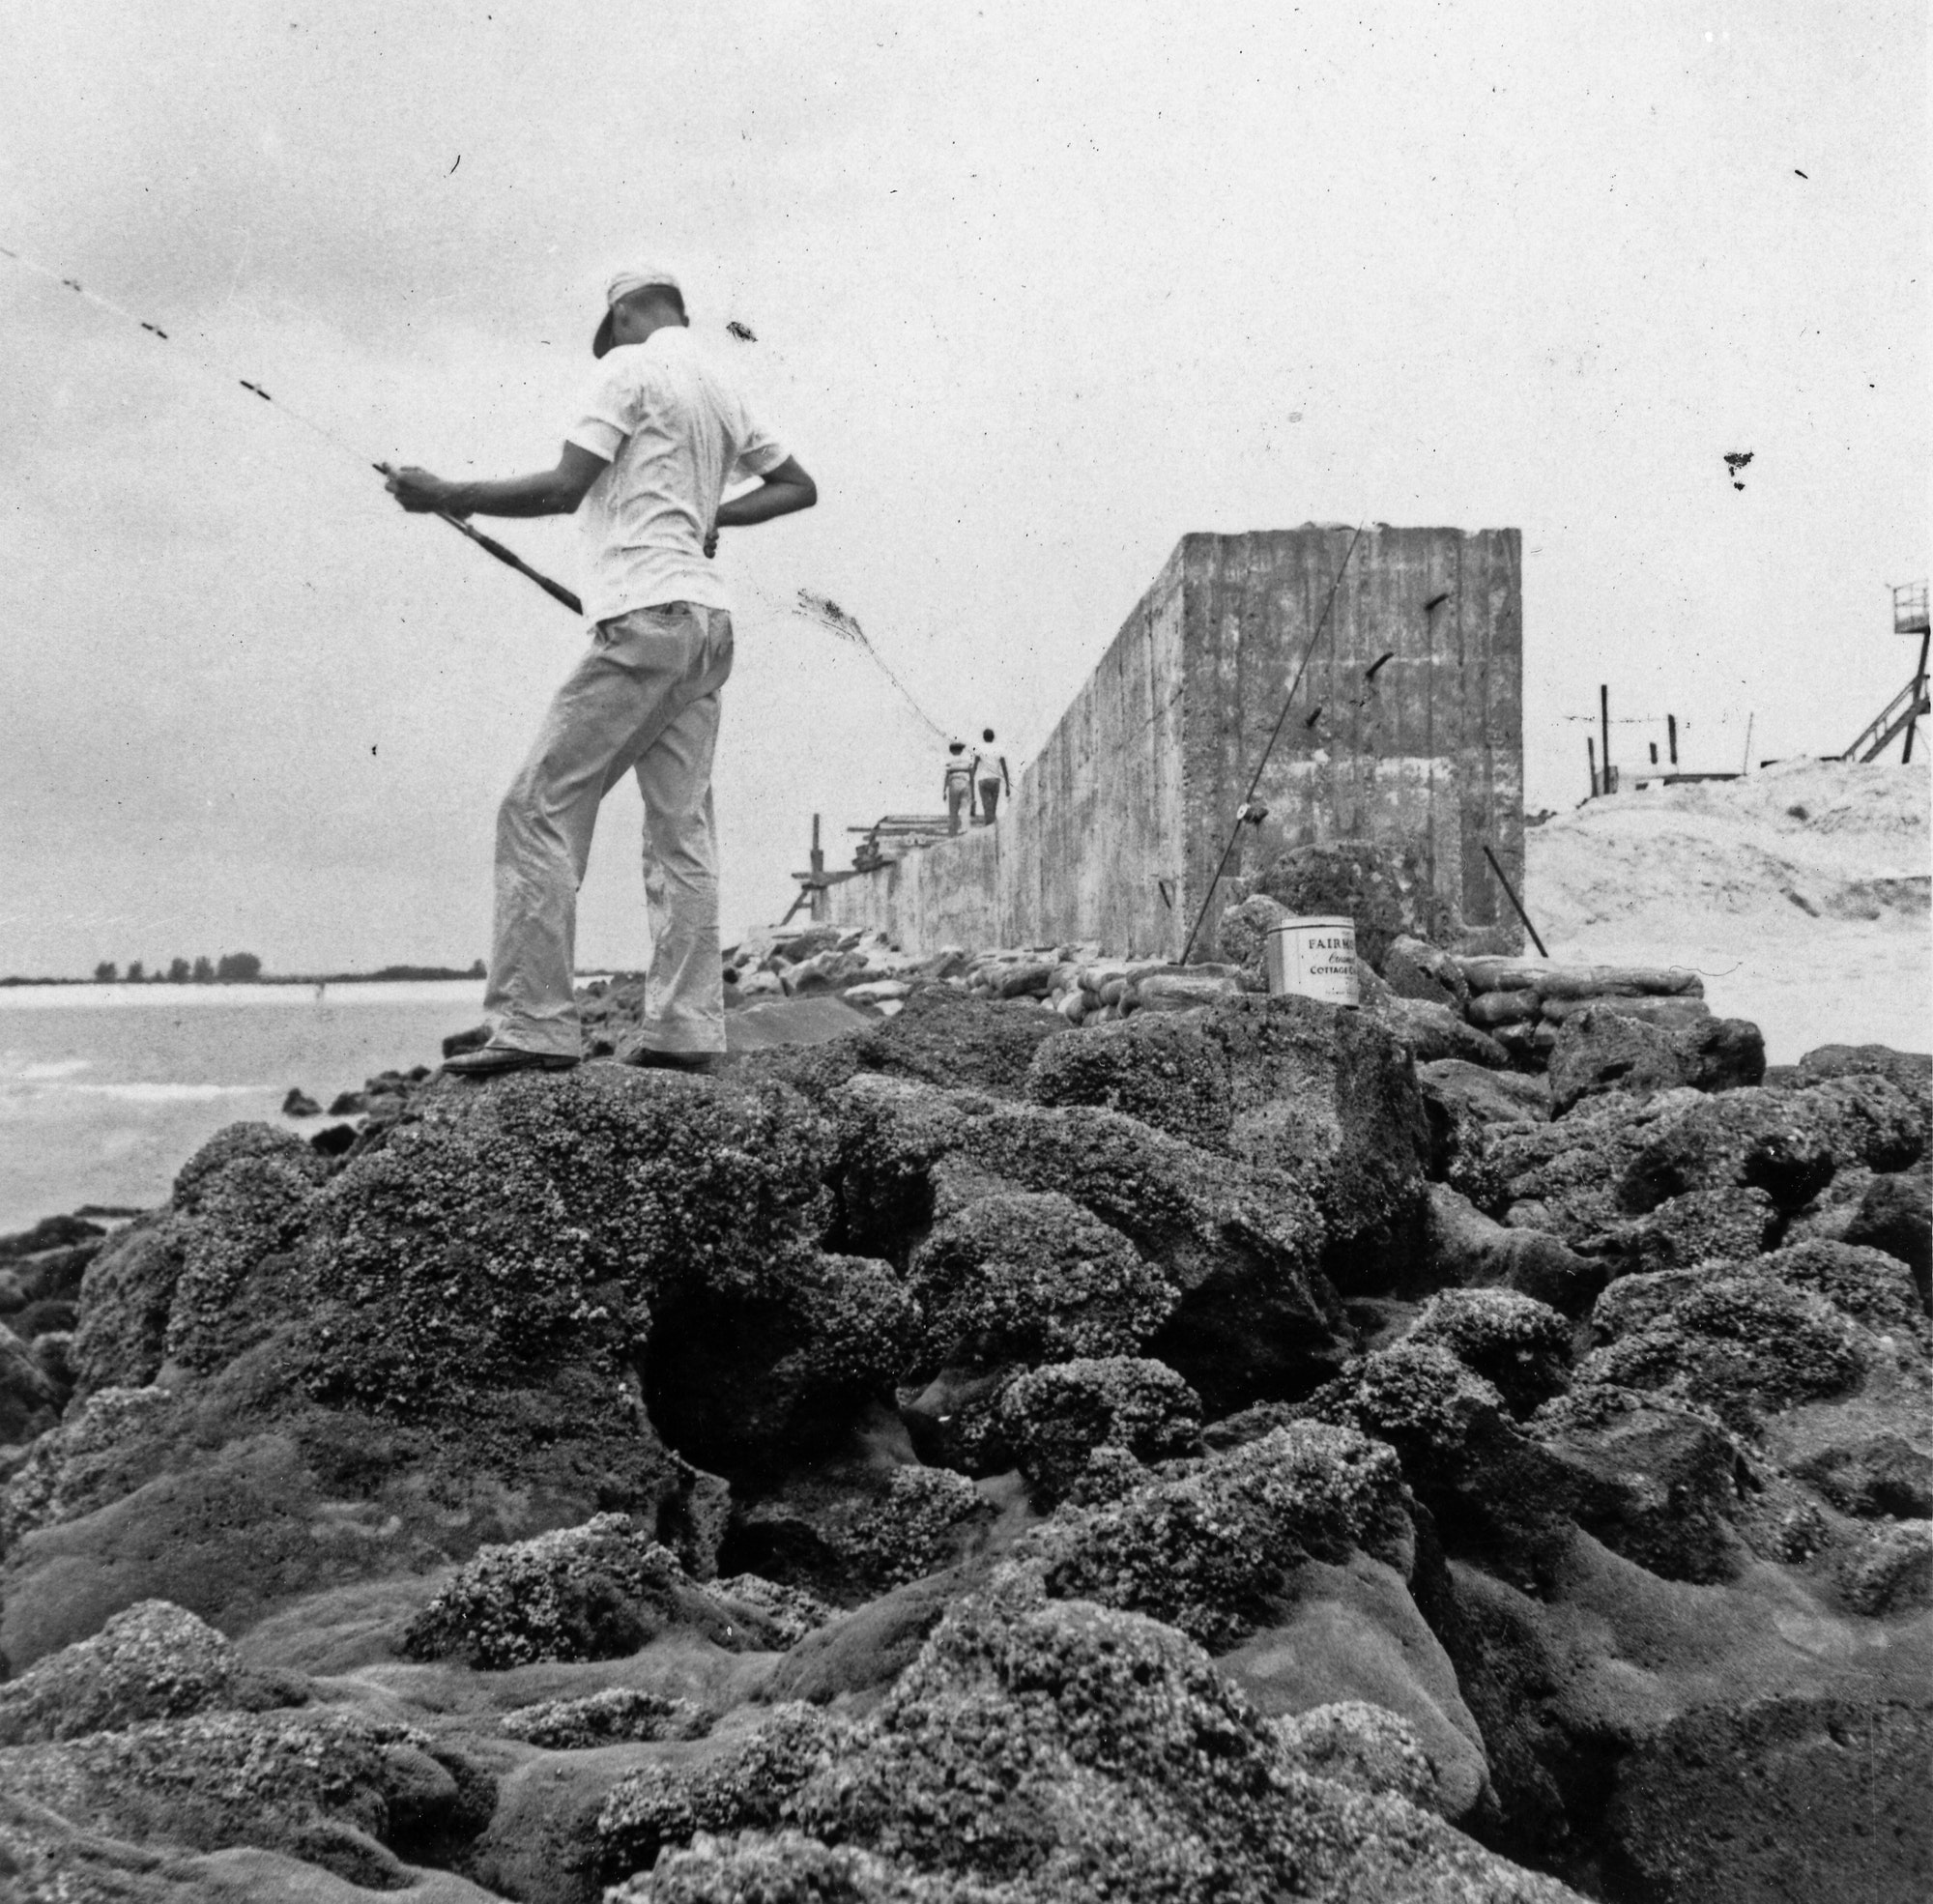 fisherman on the rocks in front of north jetty concrete cap